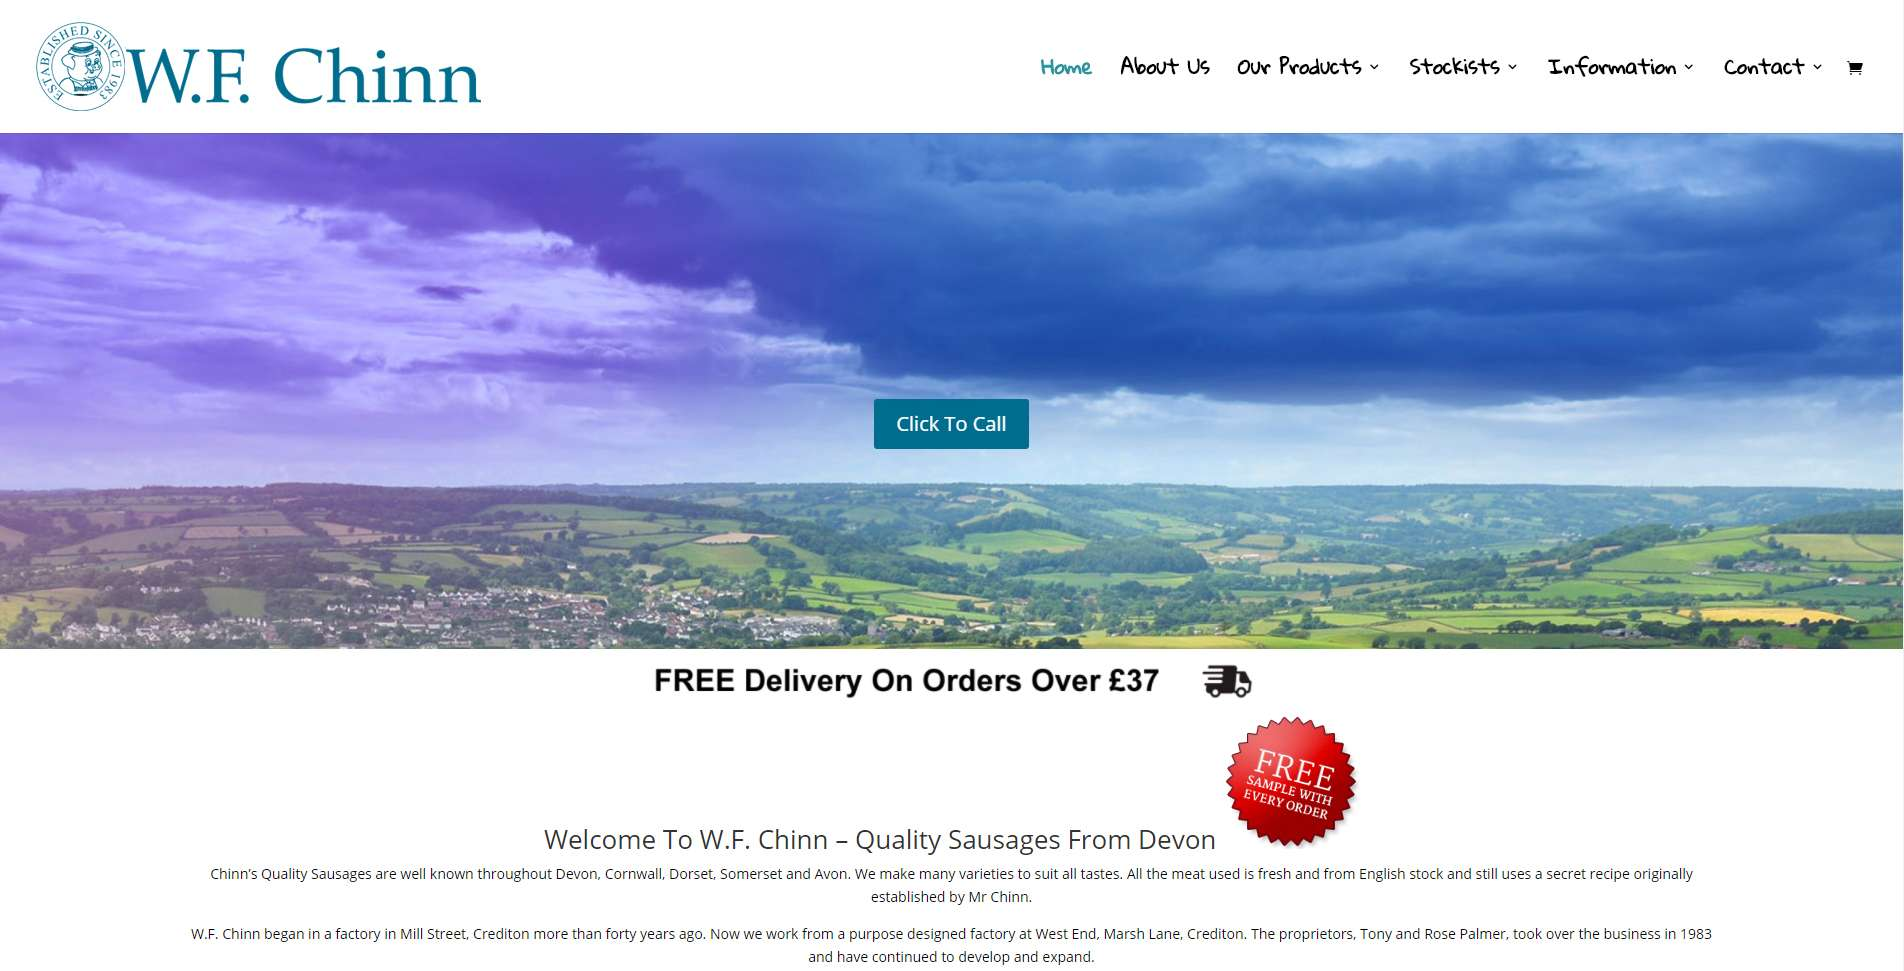 WF Chinn - Edworthy Media Portfolio - Quality Website Design In Exeter and Crediton